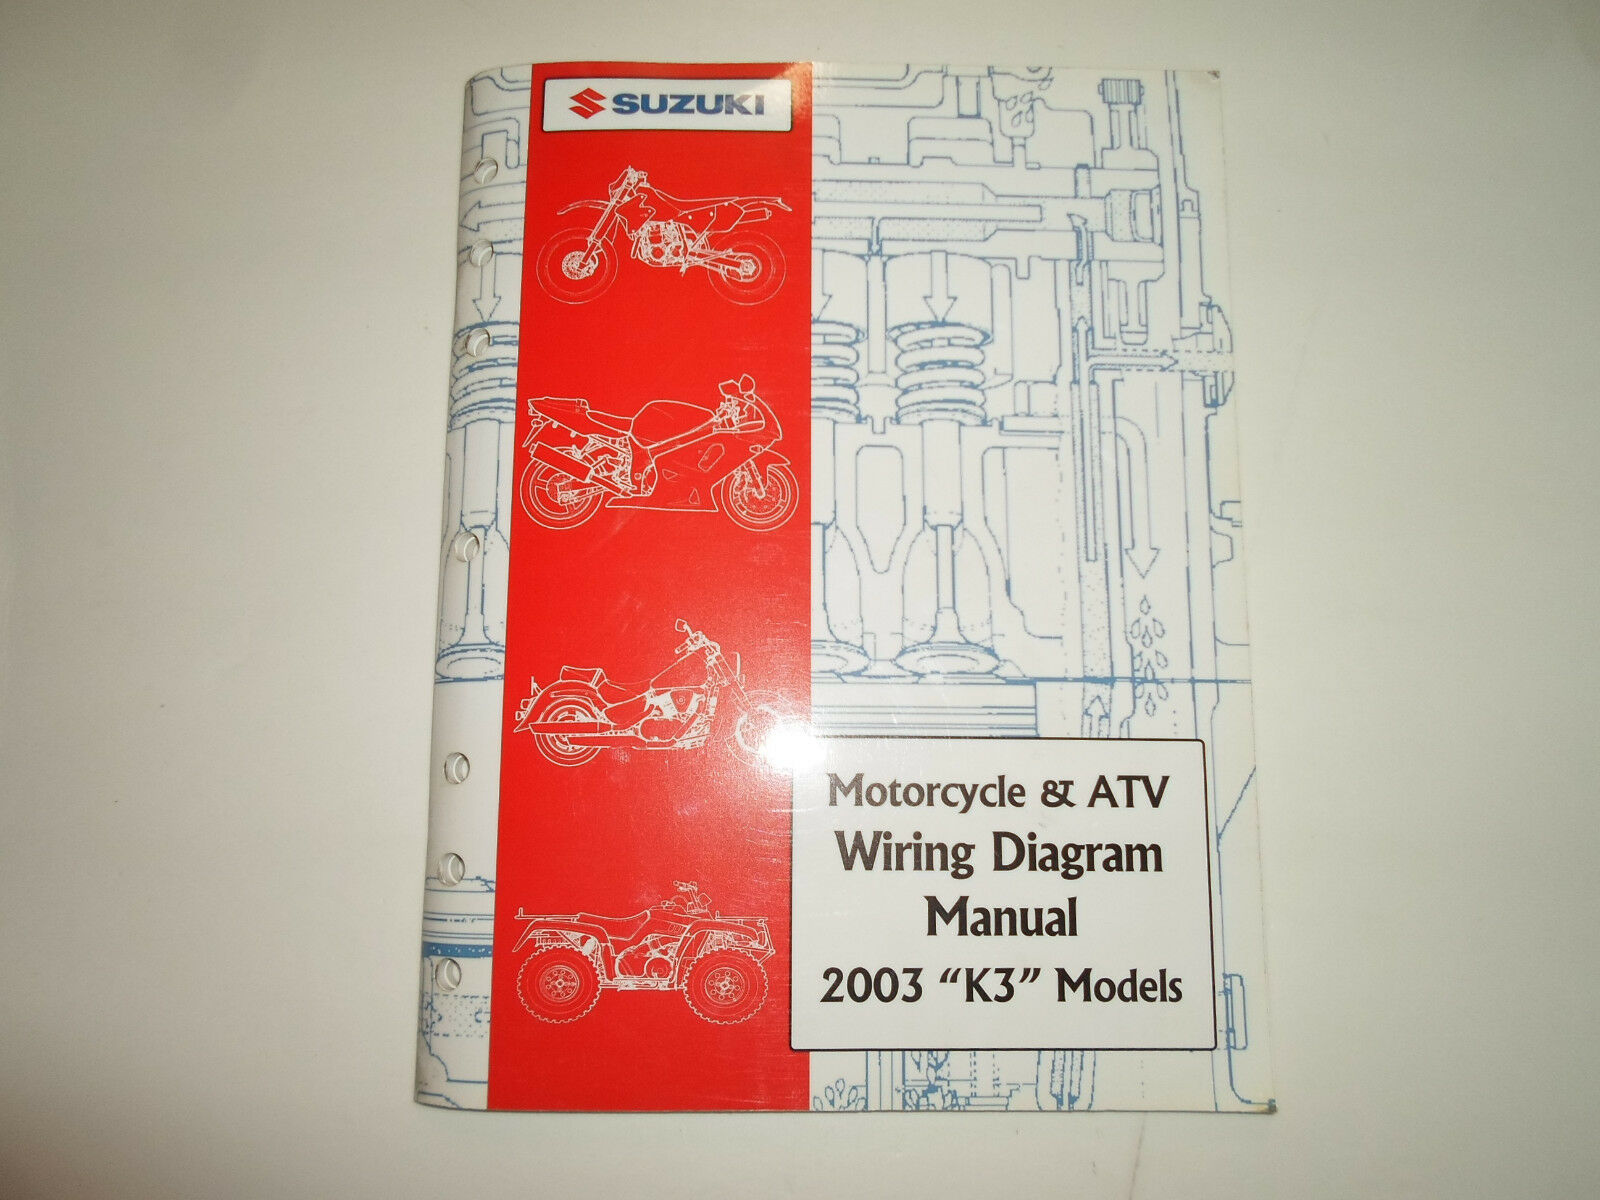 2003 Suzuki Motorcycle Wiring Diagrams Library Can I Get A Diagram For 1 Of 12only 2 Available Atv Manual Models